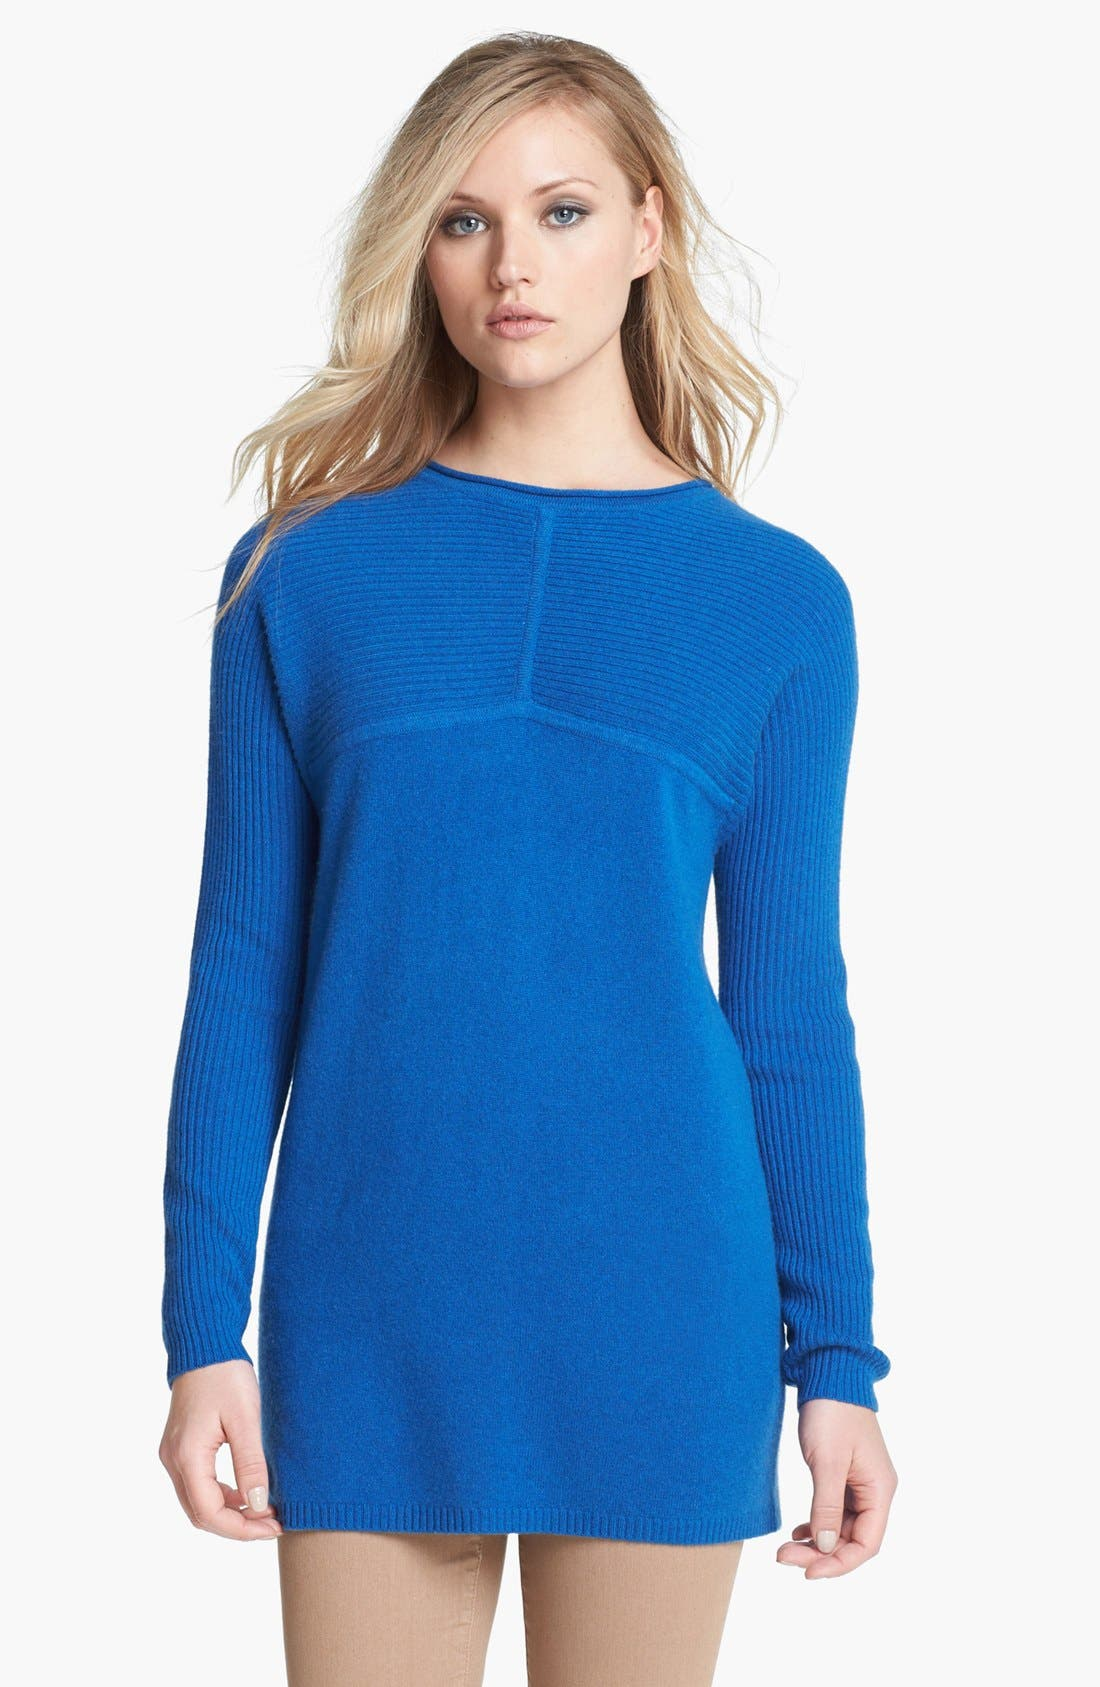 Main Image - Tory Burch 'Deanna' Cashmere Sweater